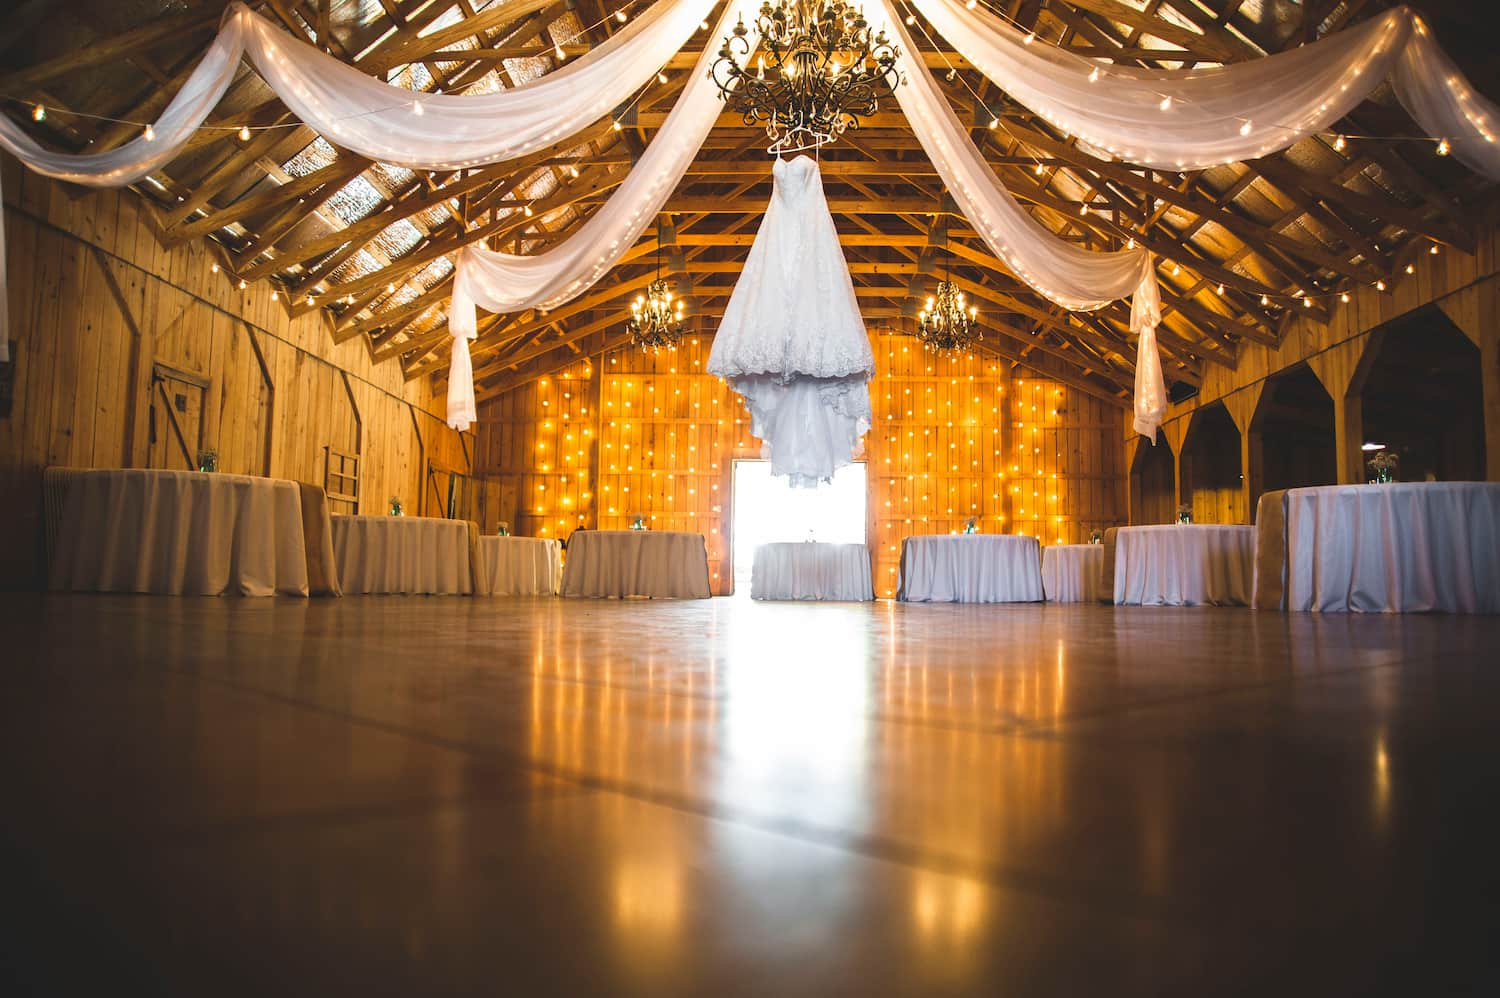 How to Throw the Rustic Wedding of Your Dreams